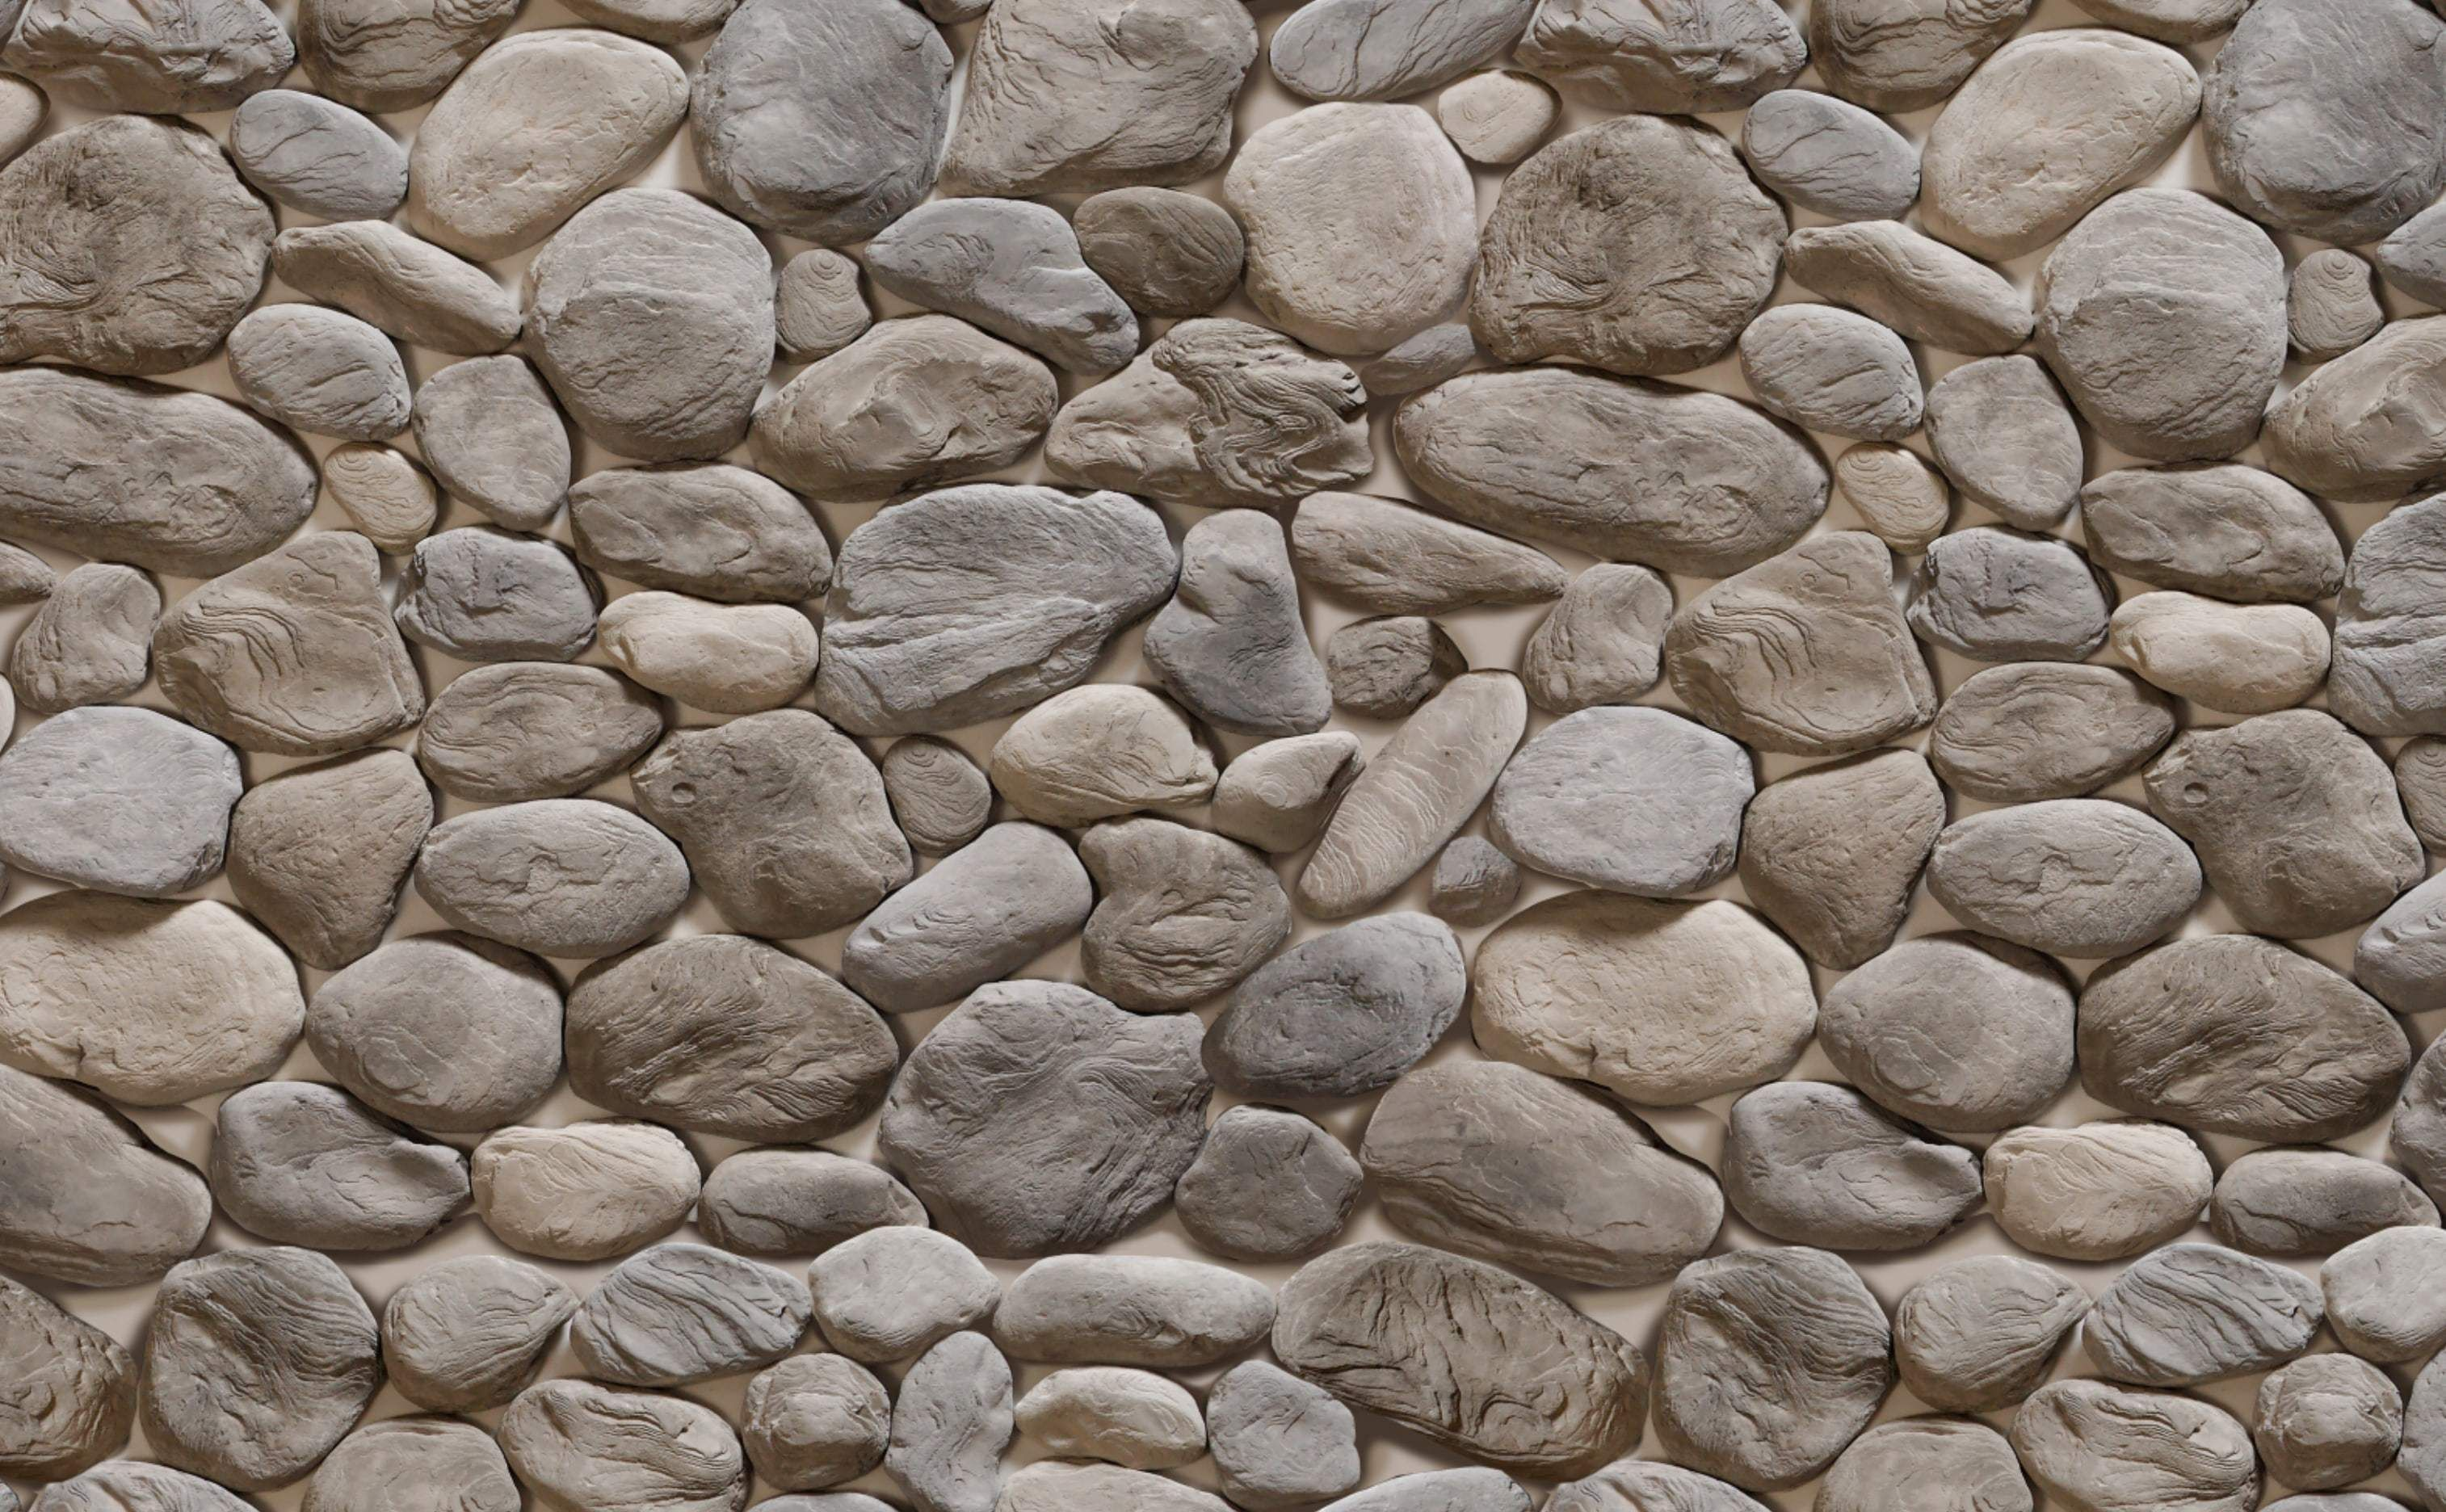 I Want River Rock Peel And Stick Tile For The Living Room And Kitchen I Just Have To Find It The One Rock Tile Trendy Kitchen Backsplash Kitchen Backsplash